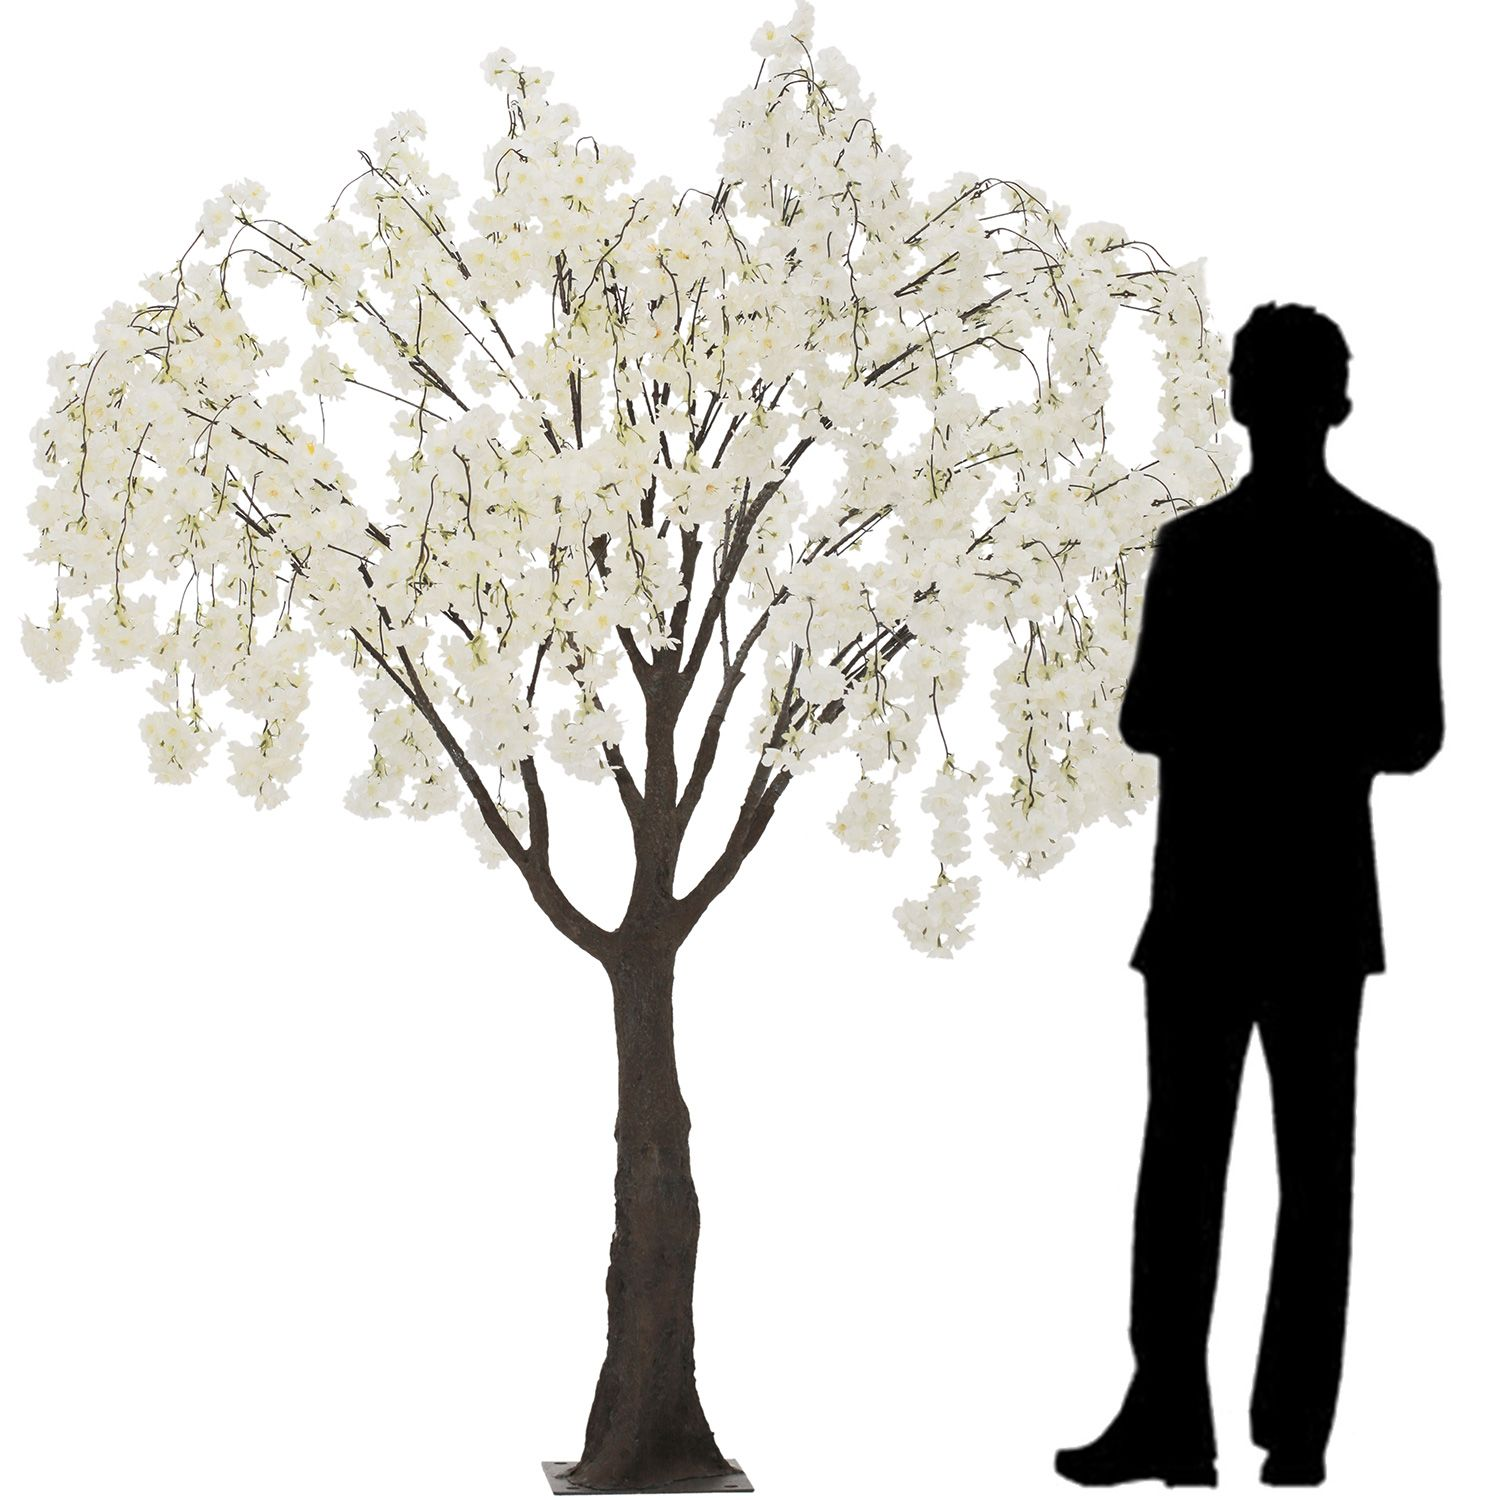 6ft Drooping Cherry Blossom Tree Floor Or Grand Centerpiece 10 Interchangeable Branches White Wedding Tree Decorations Blossom Trees Cherry Blossom Tree